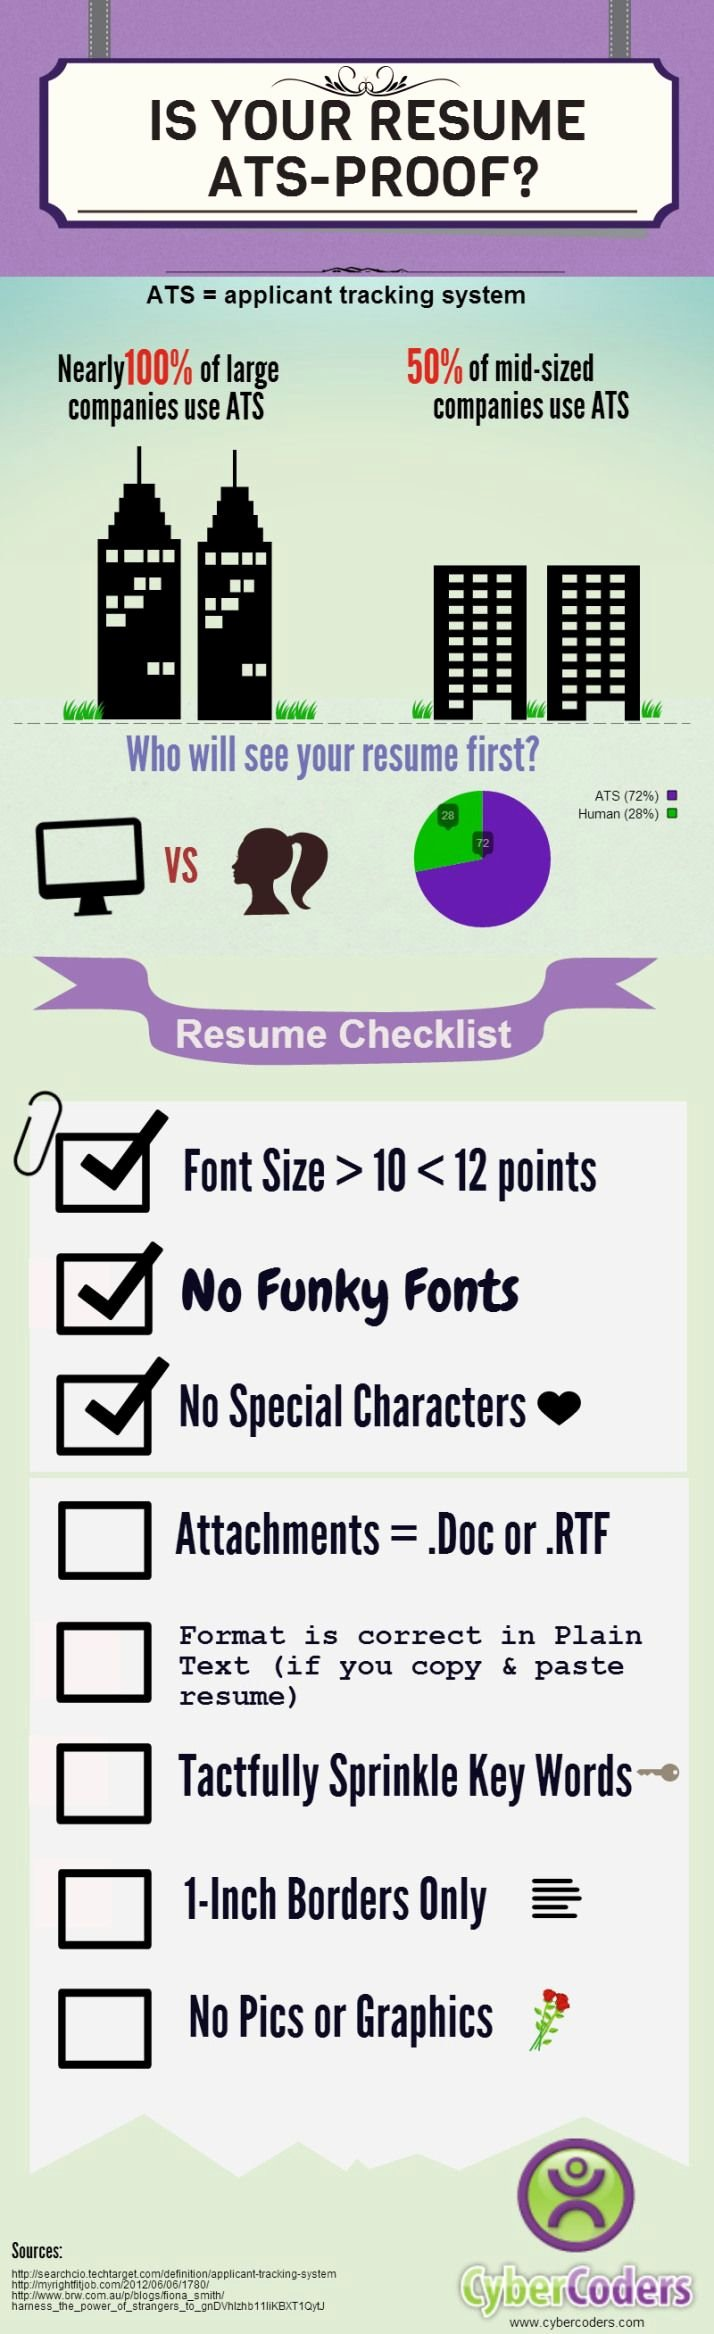 39 Best Images About Work Letter On Pinterest